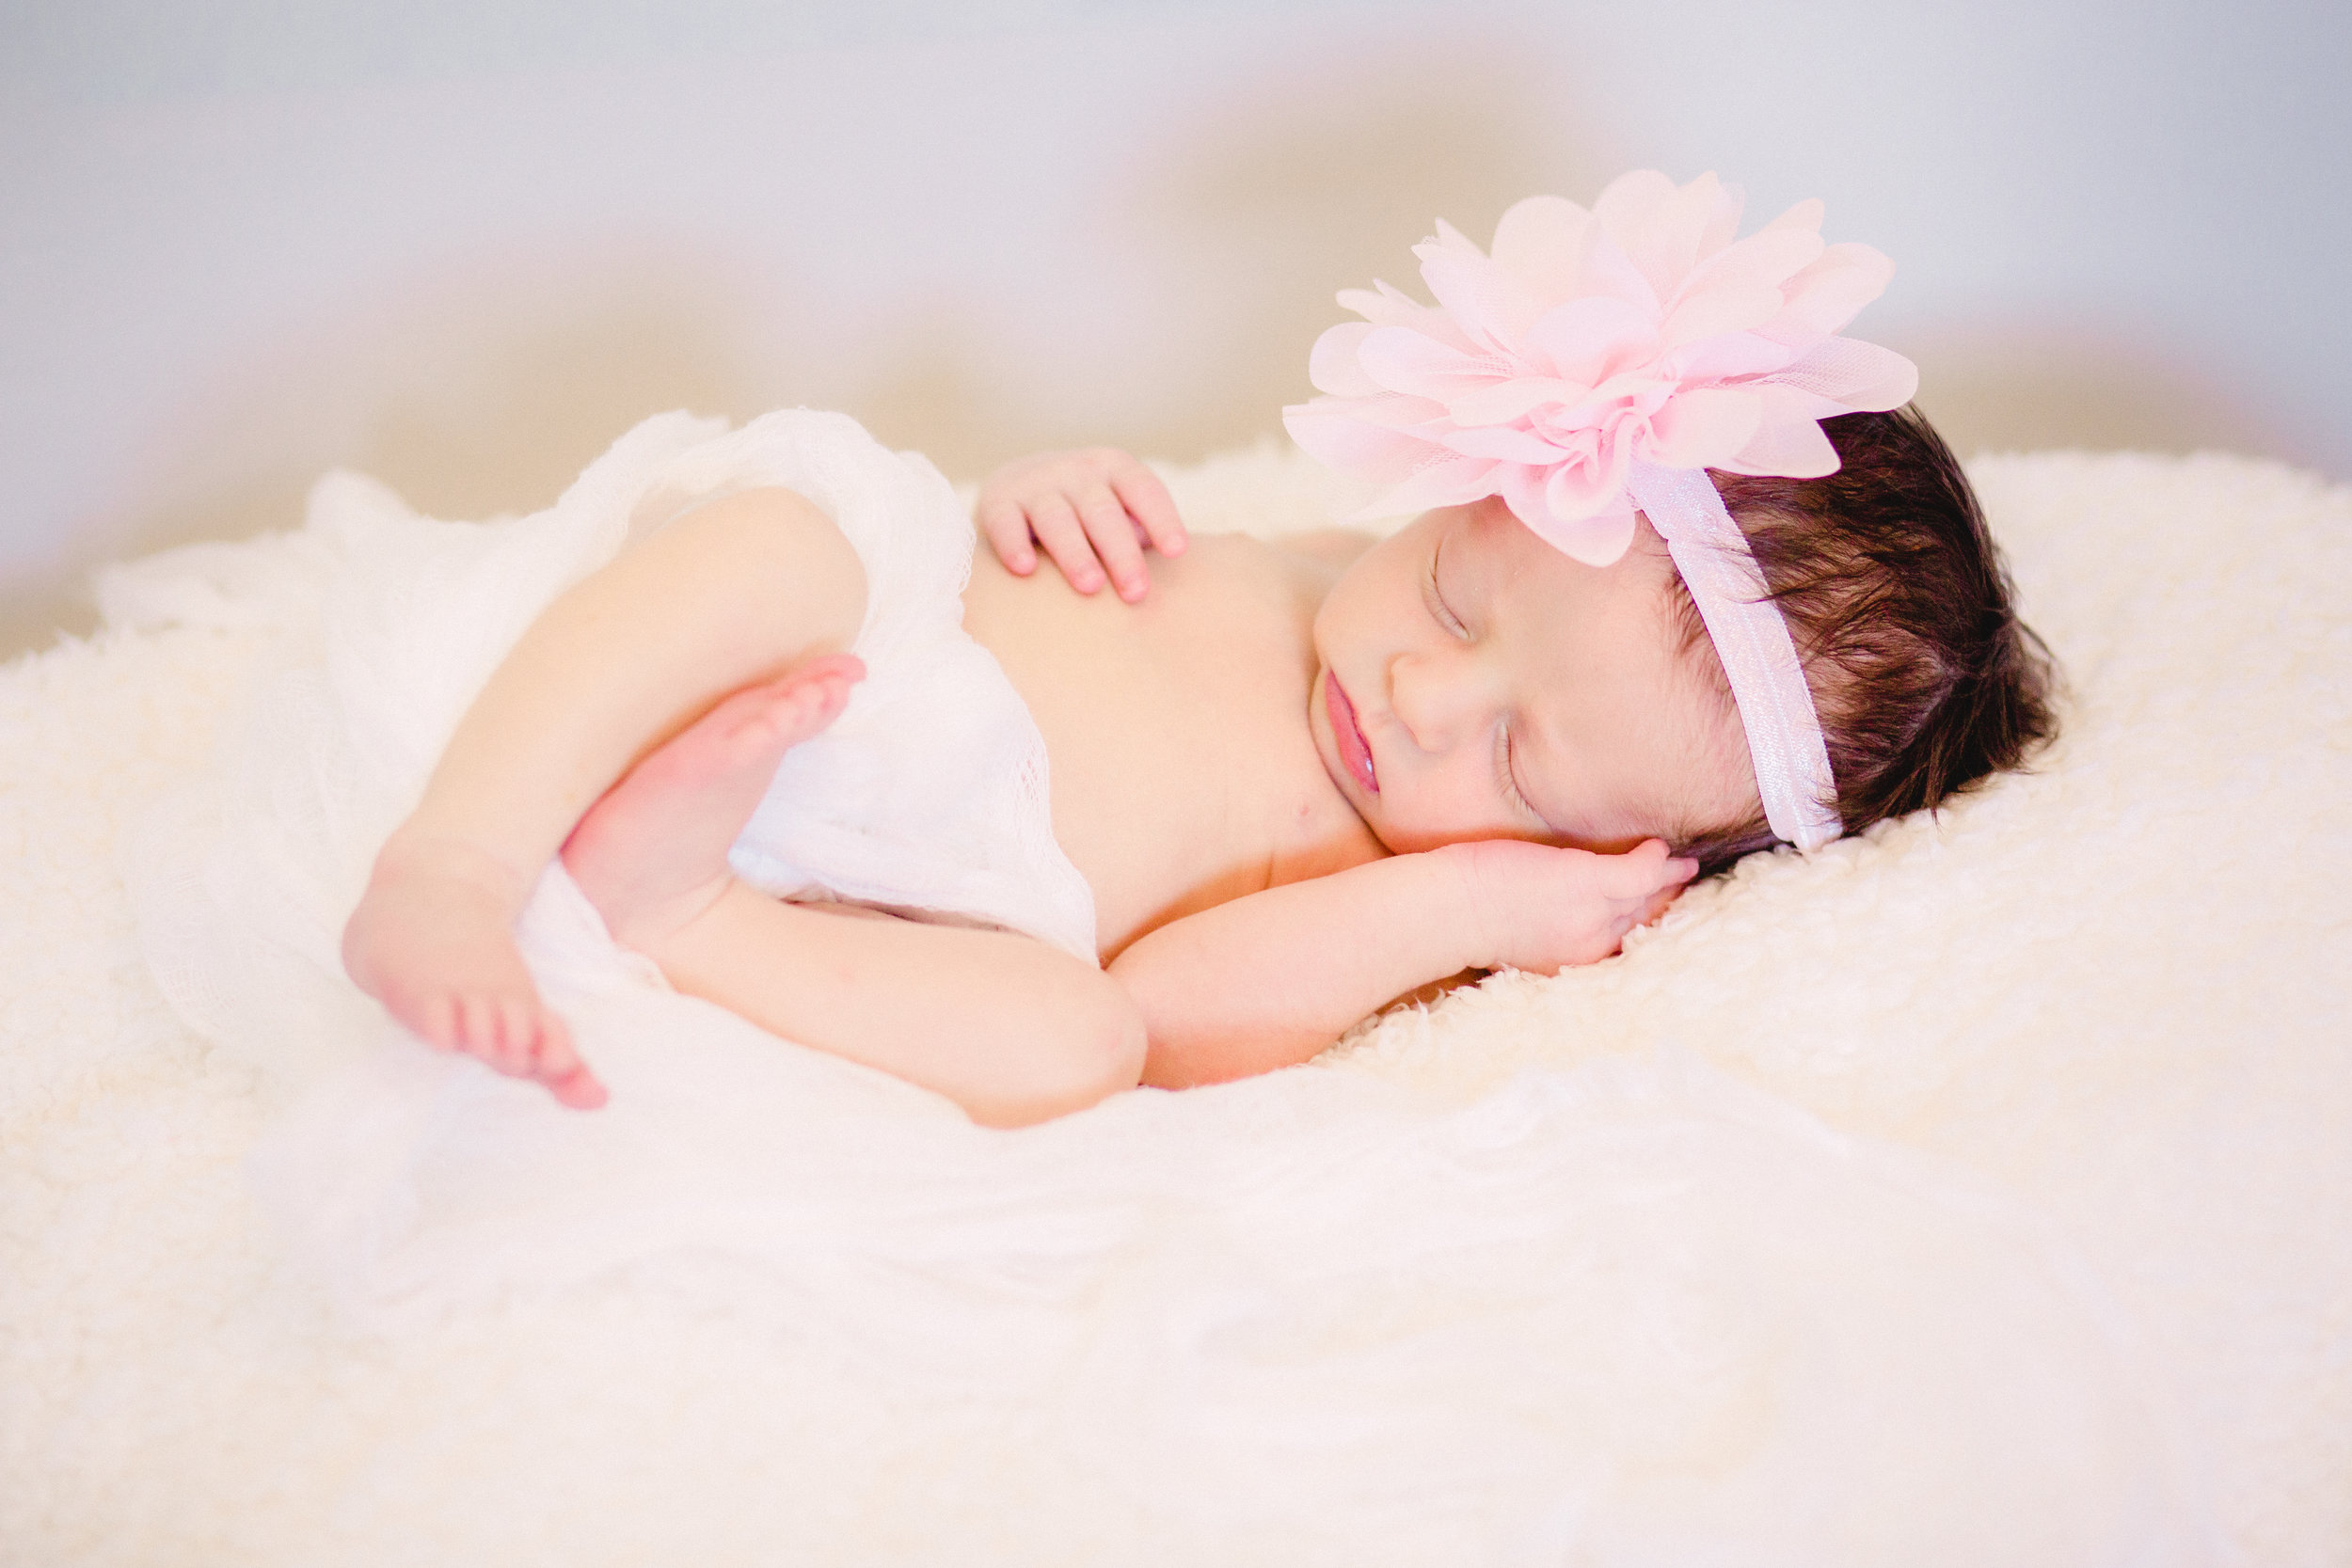 ALacey_Michelle_Photography_LR-9338.jpg